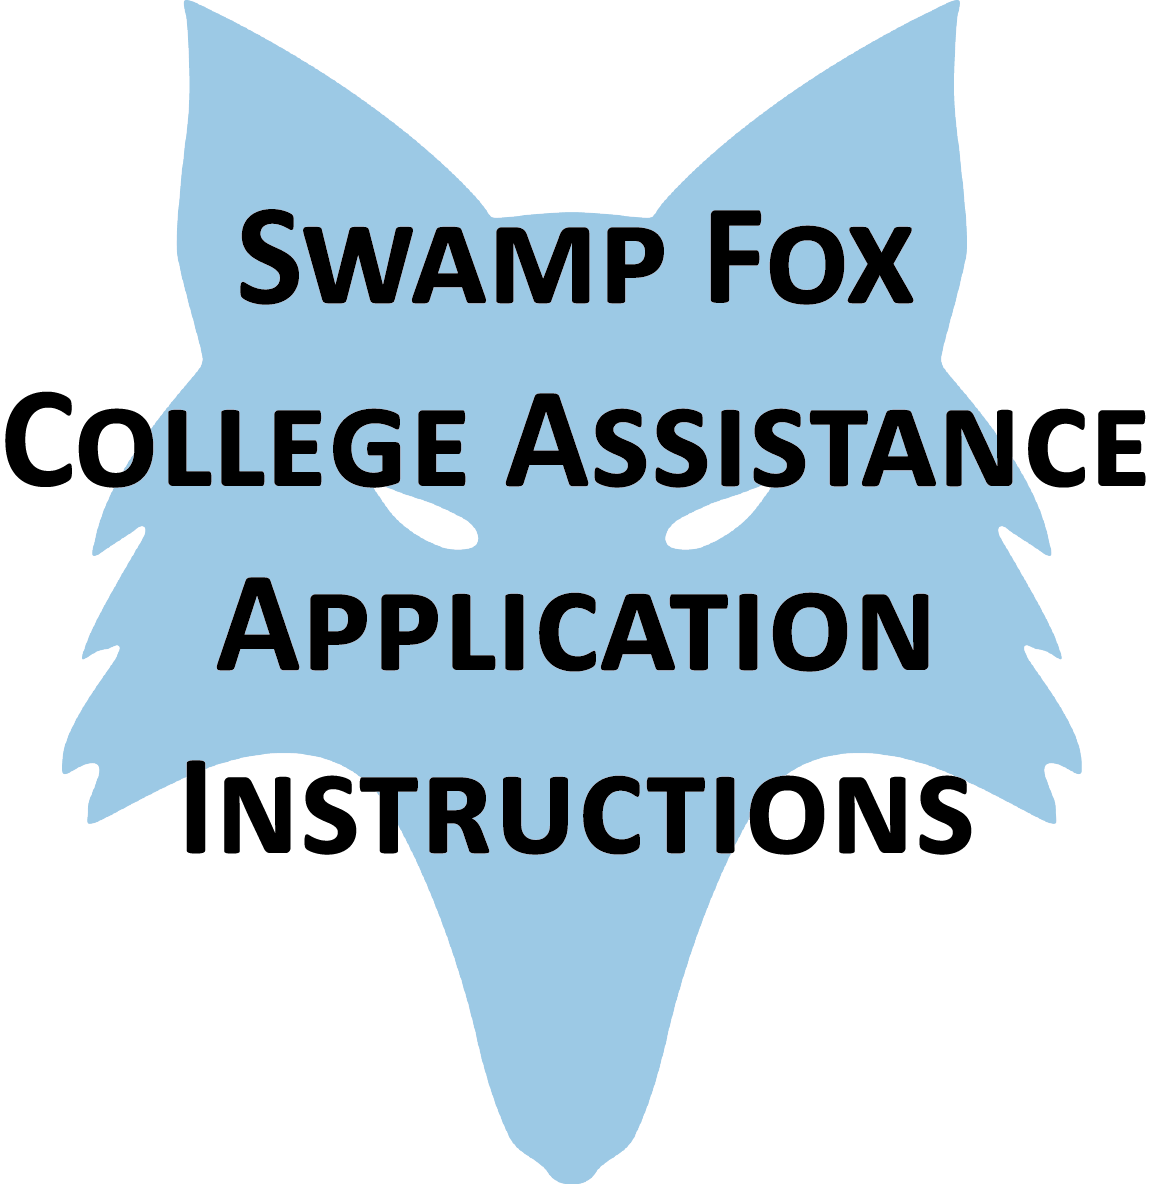 click here to access the College Assistance Program application instructions